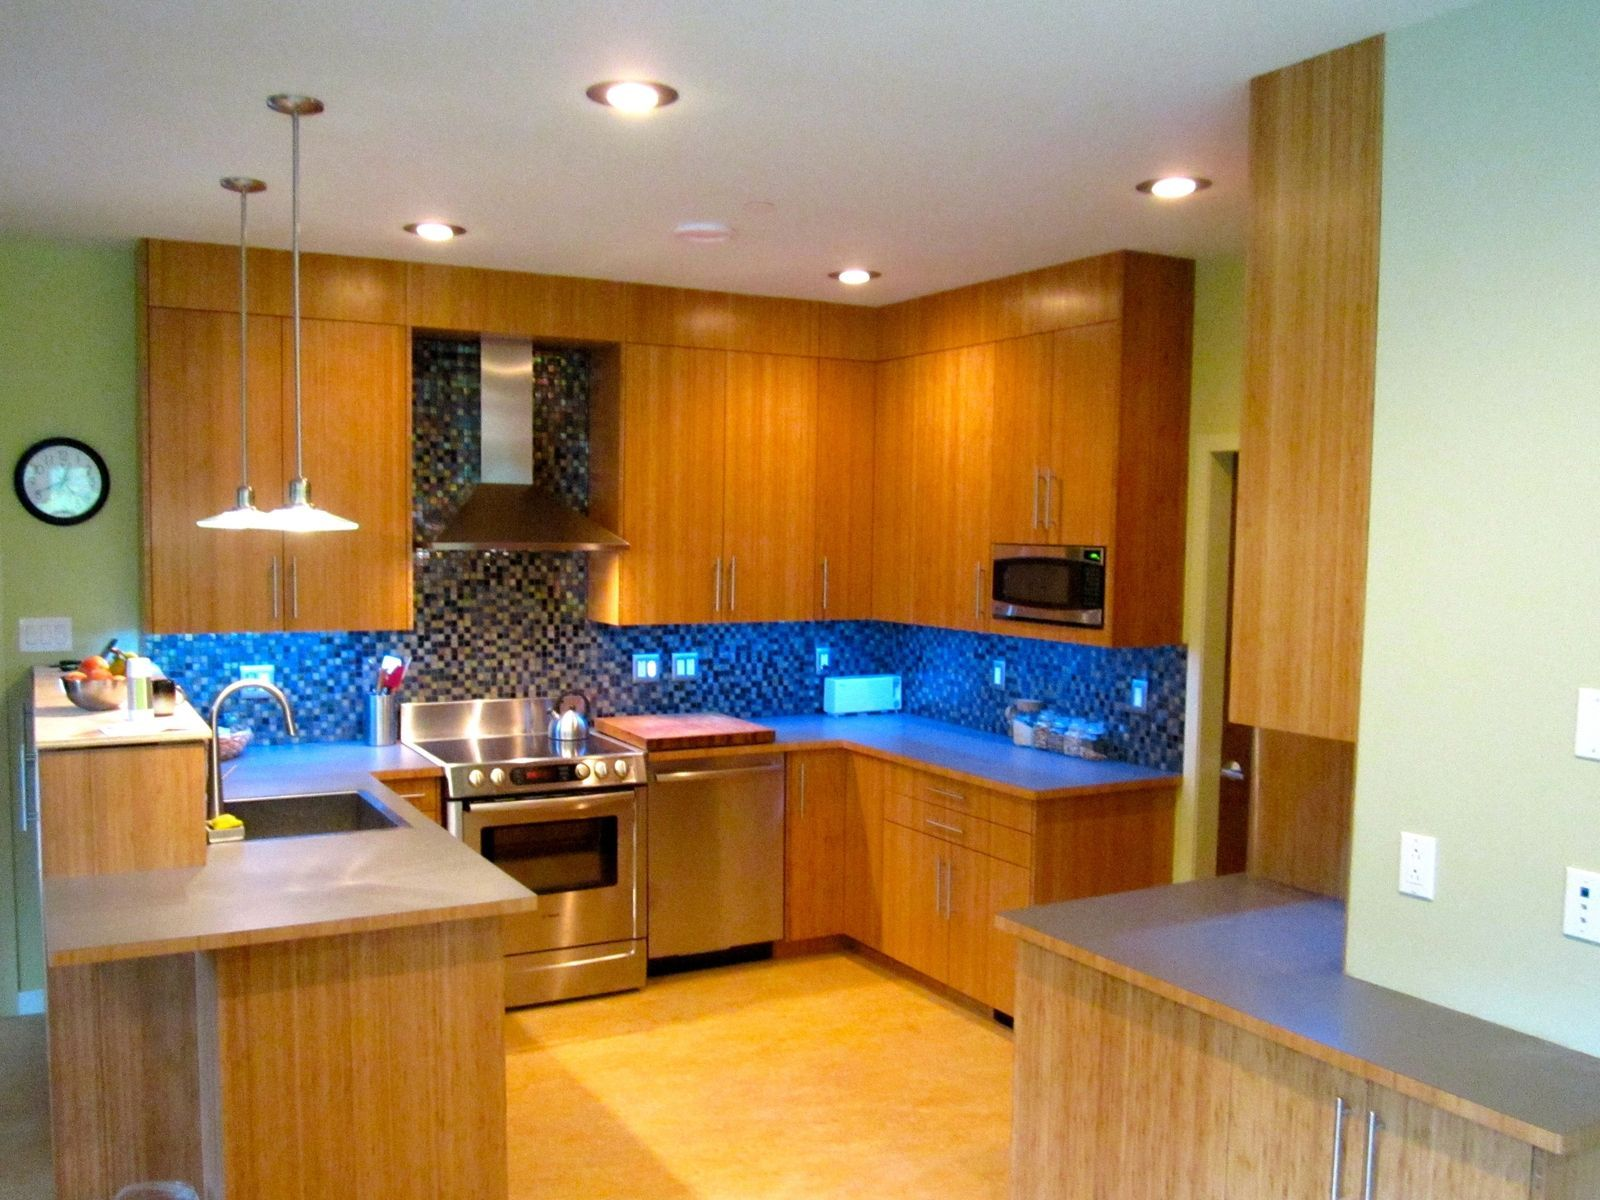 Bamboo Kitchen Cabinets Lowes Bamboo Kitchen Cabinets Lowes Bamboo Kitchen Cabinets